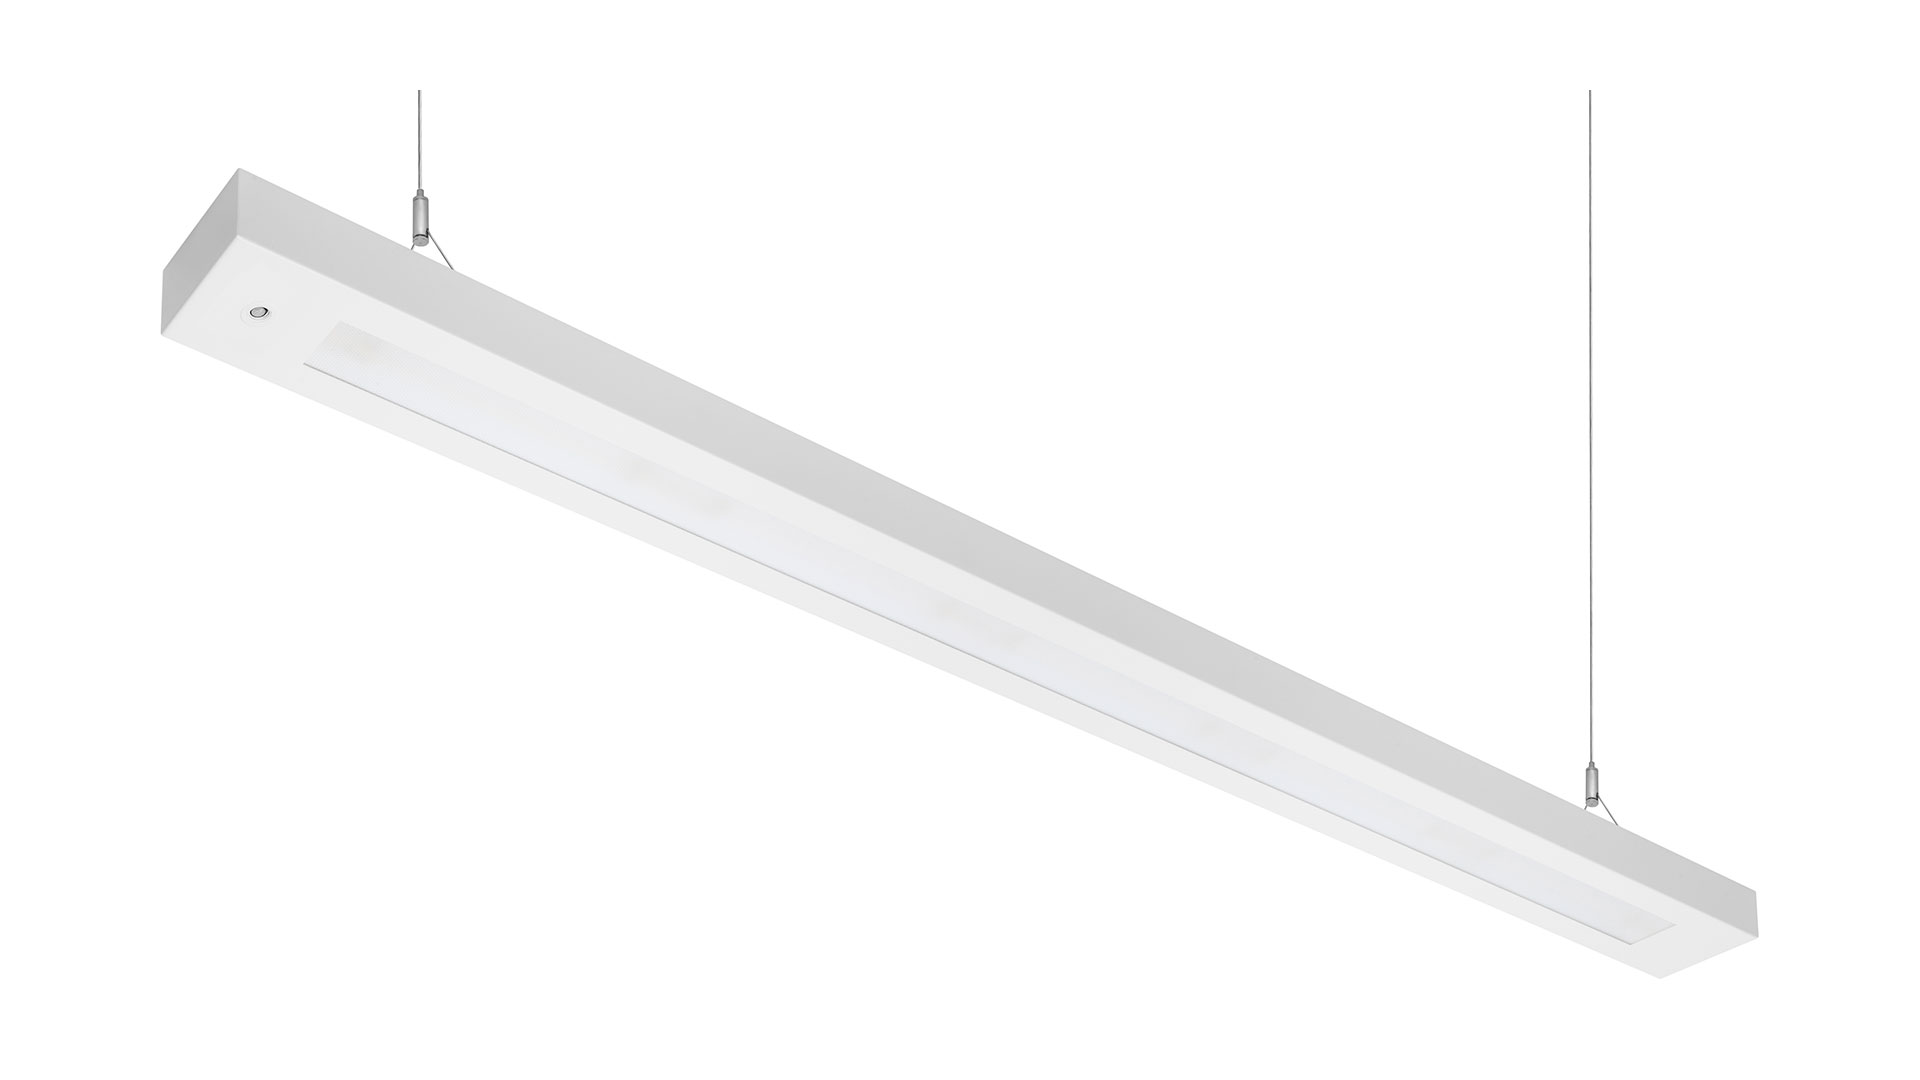 Image of product type  LAMBDA LED S+ SUSPENDED